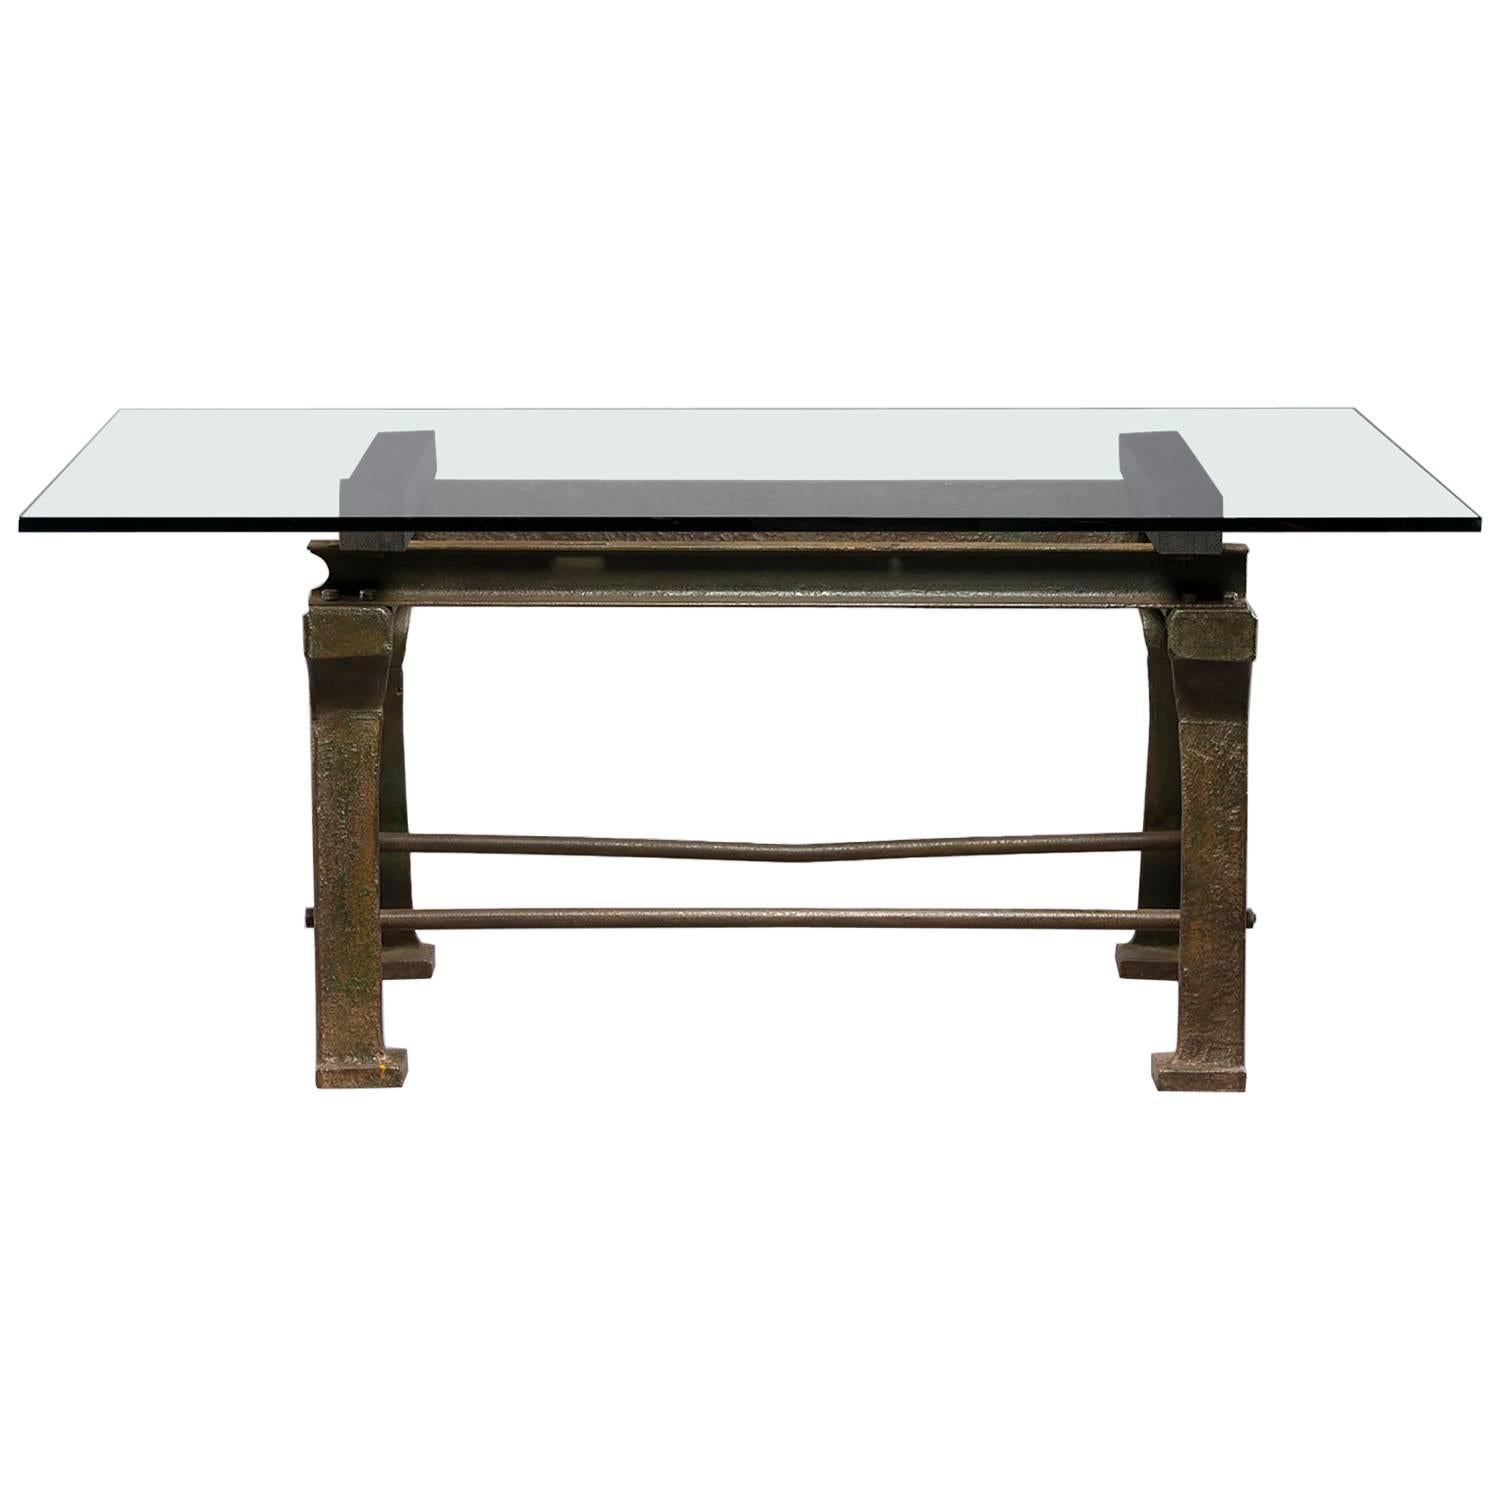 Dining Table with Industrial Iron Base, Original Paint and New Glass Top